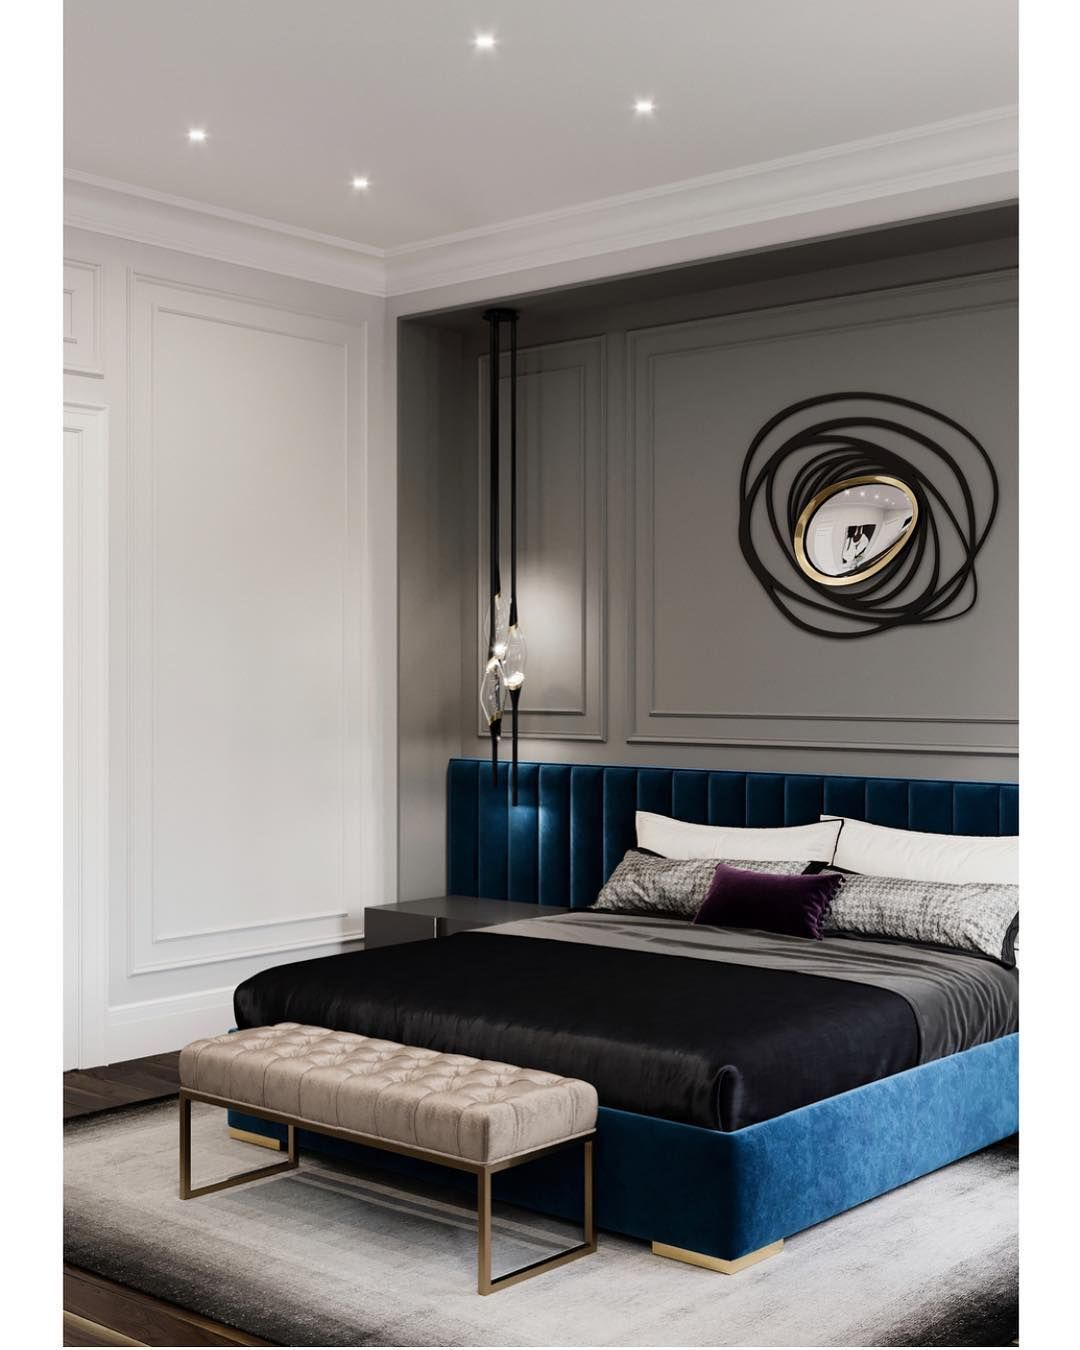 Vikki Chambers Williams On Instagram Such A Chic And Elegant intended for Modern Elegant Bedroom